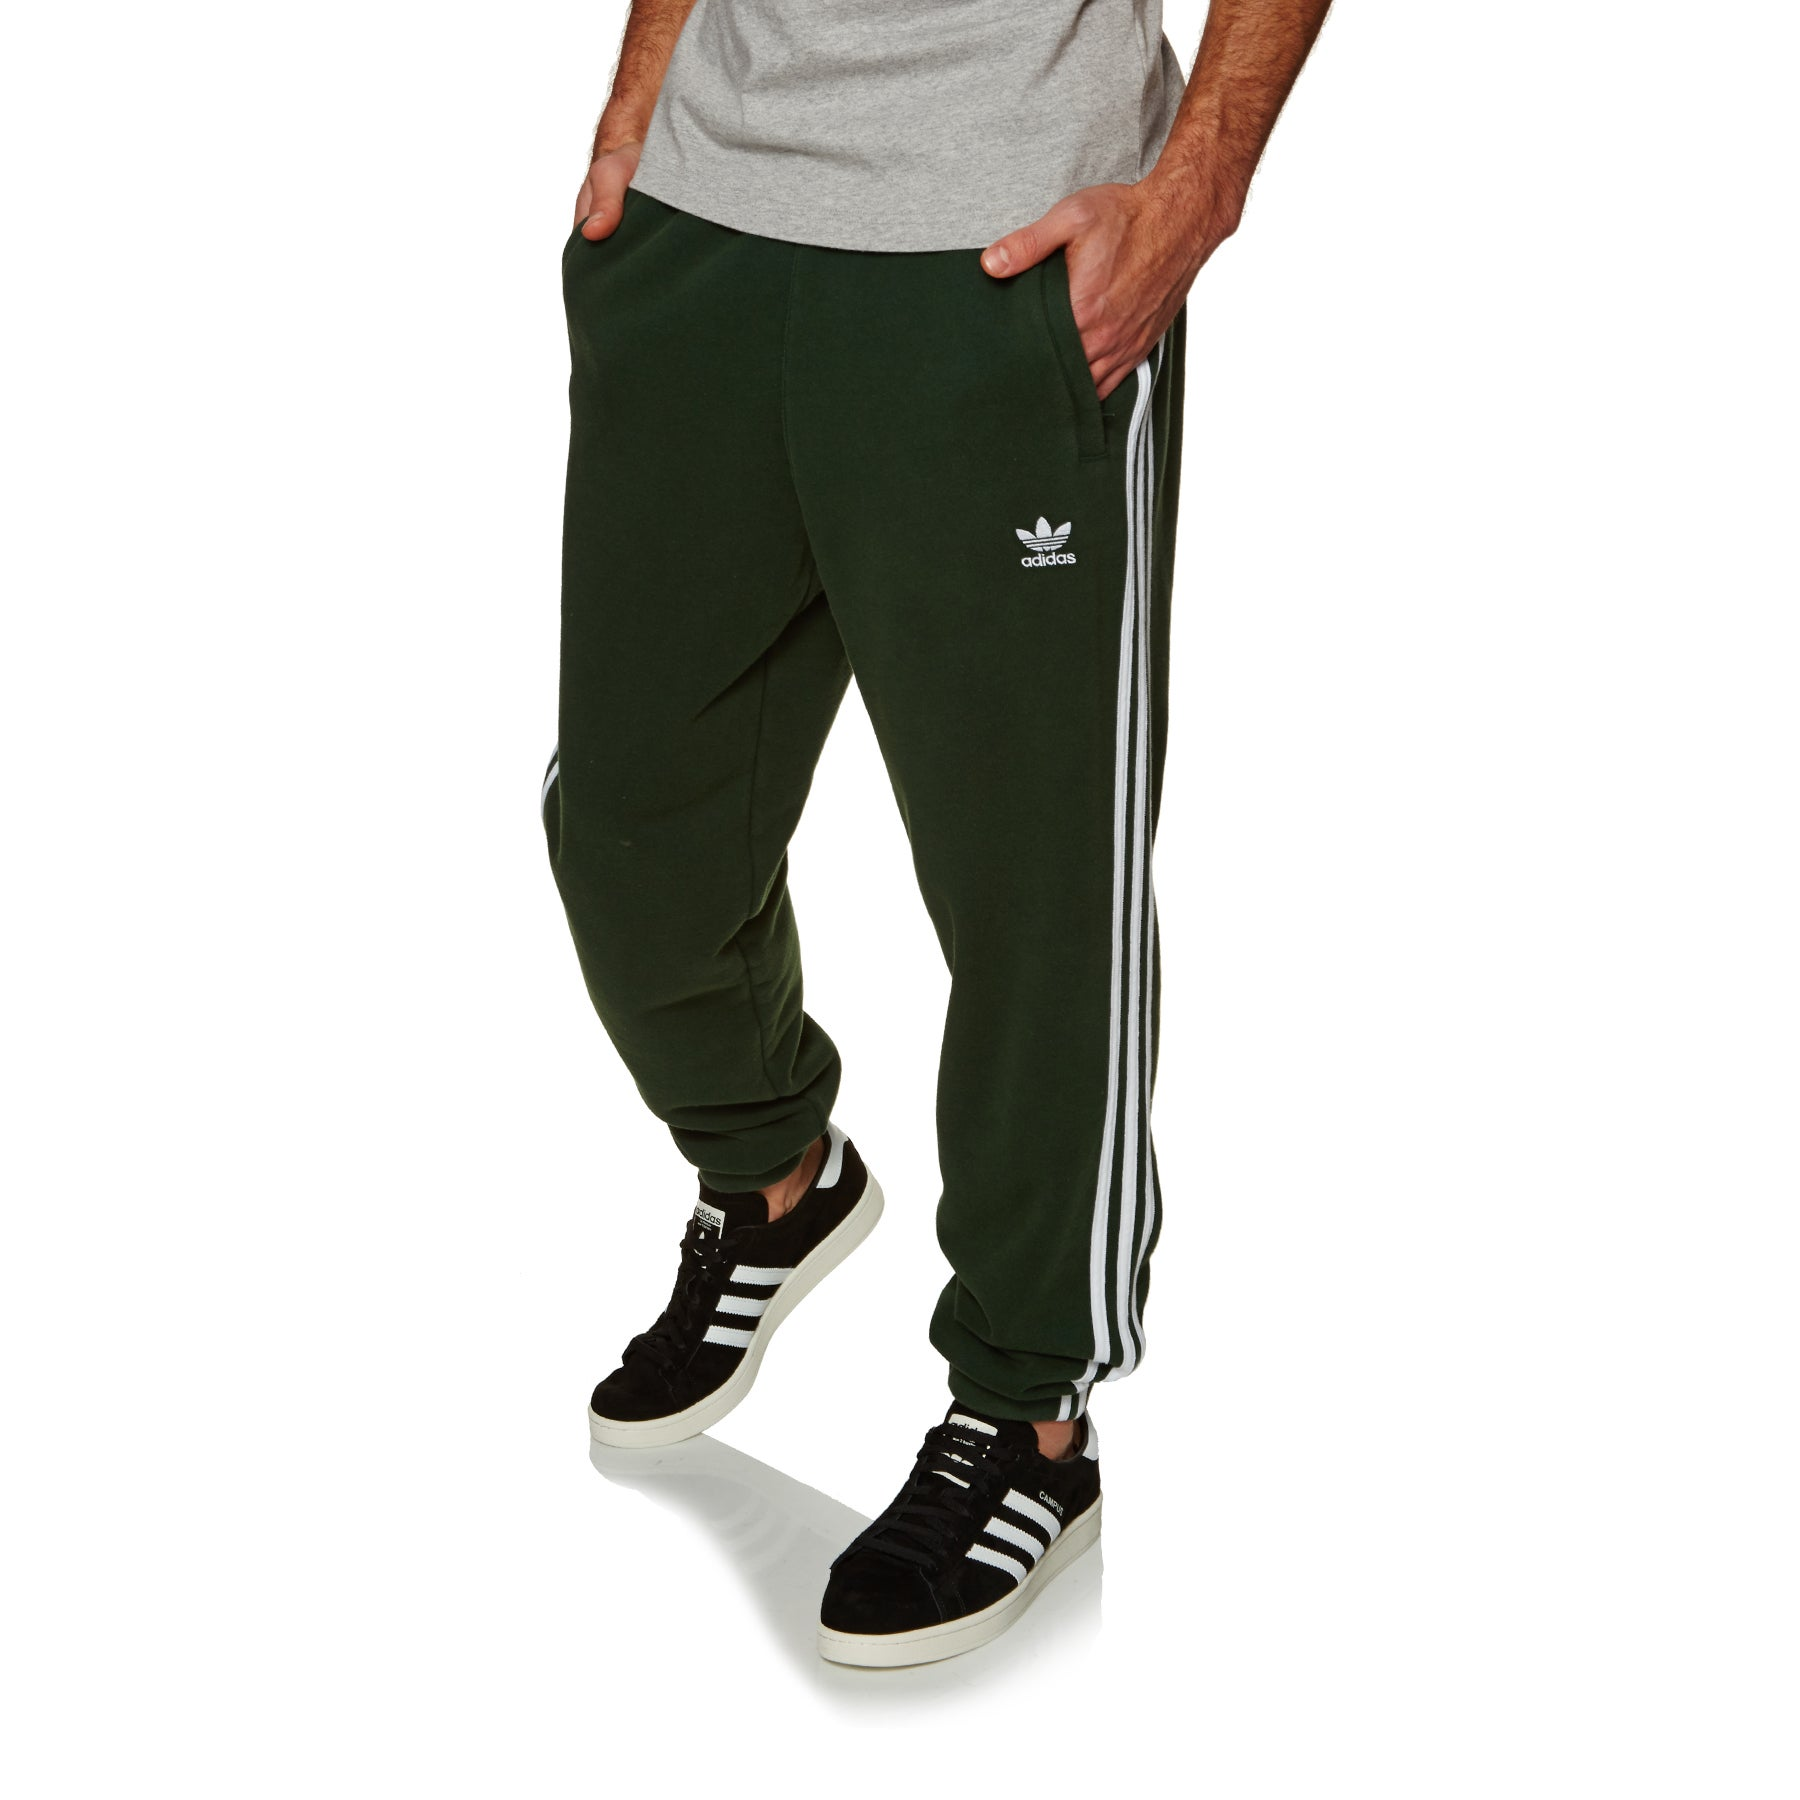 Adidas Originals 3 Stripe Loungewear - Green Night